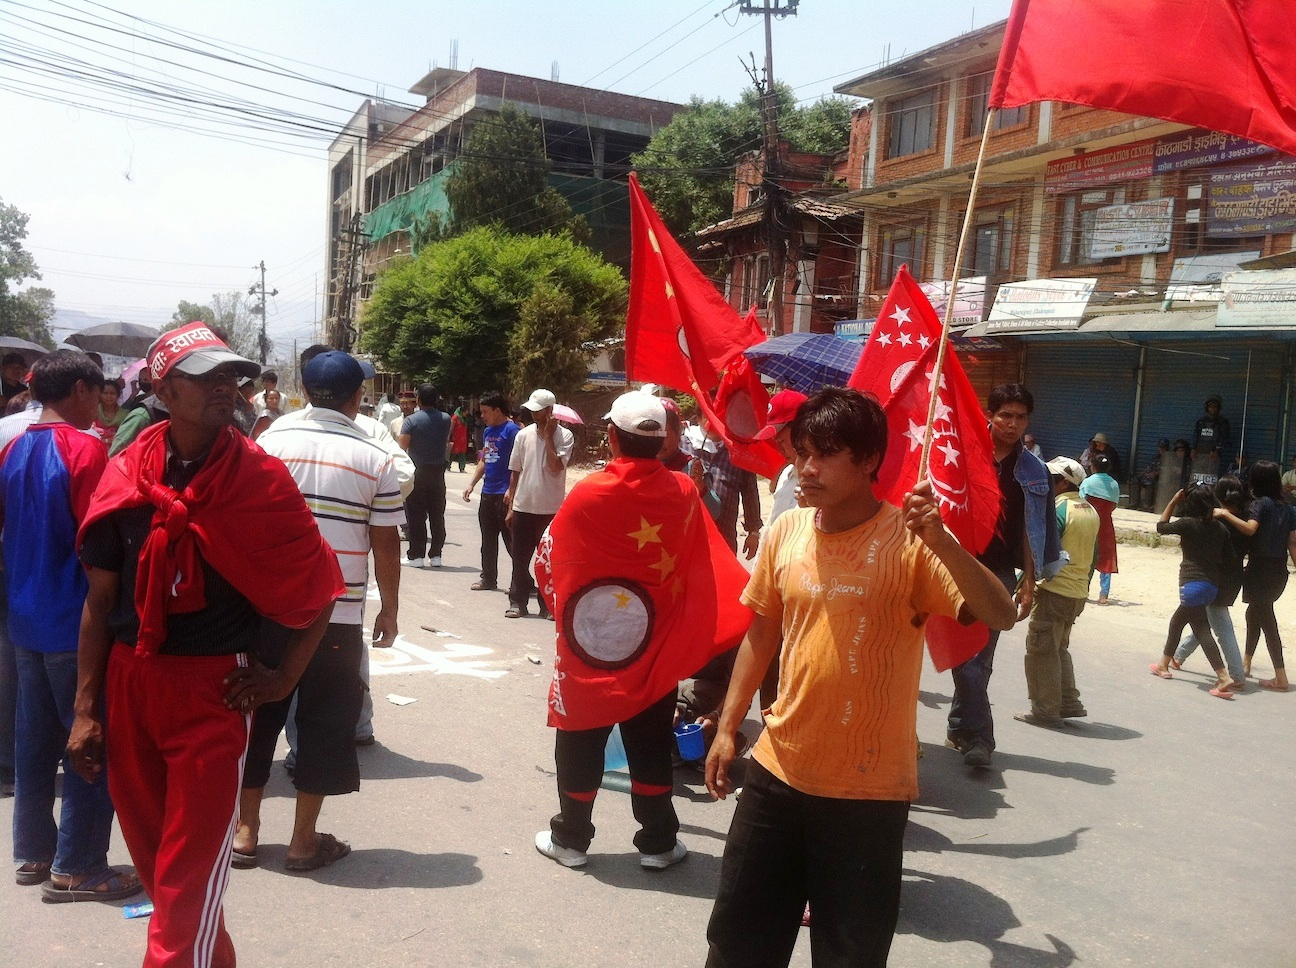 Protestors in Kathmandu gather ahead of a 27 May 2012 deadline for lawmakers to agree on a new draft constitution for the country